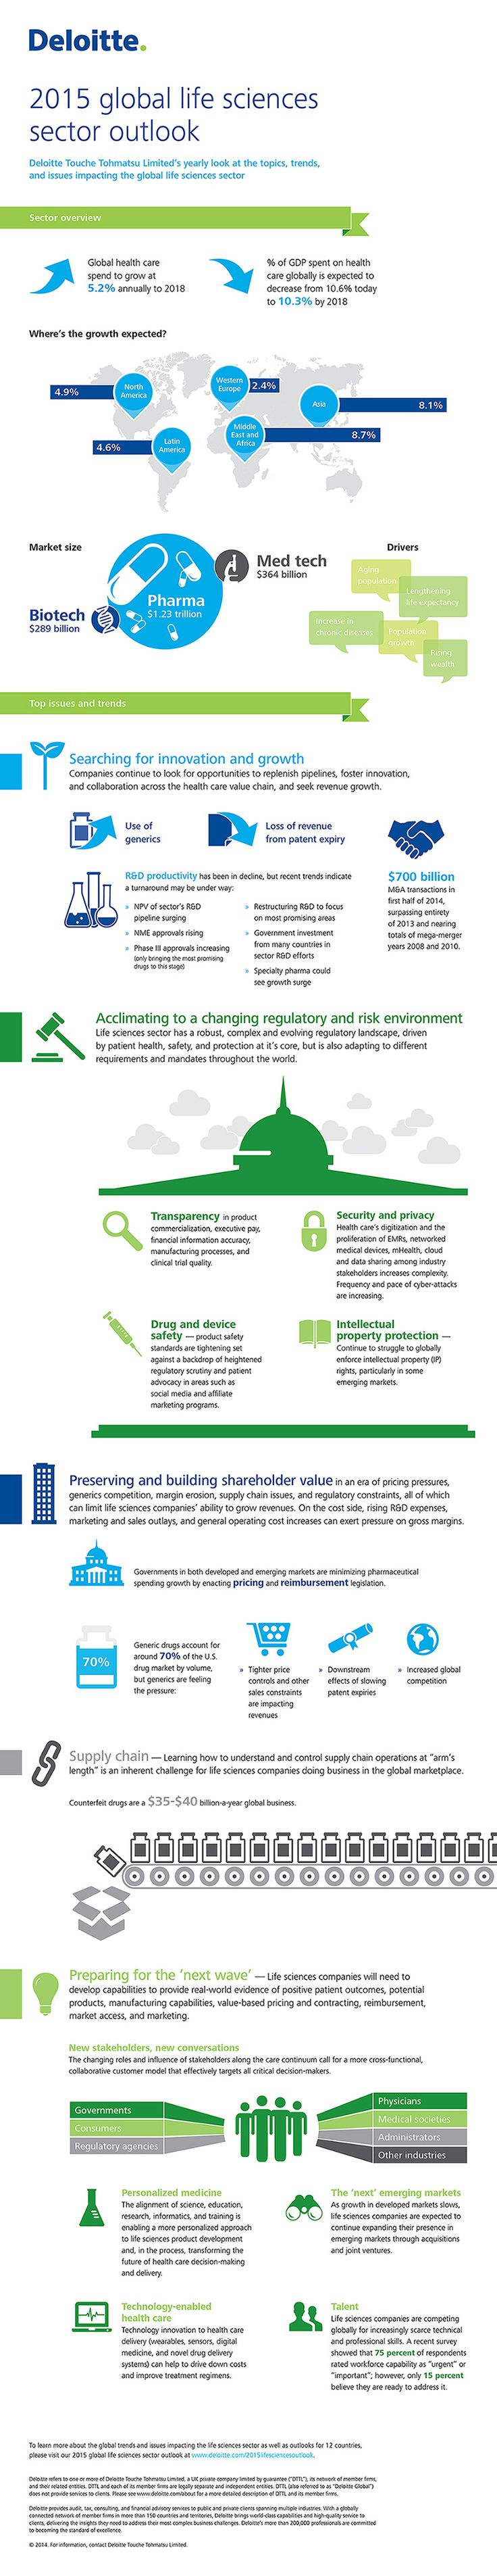 Deloitte | DeloitteHealth | 2015 Global Life Sciences Outlook Infographic | #CHSBlog